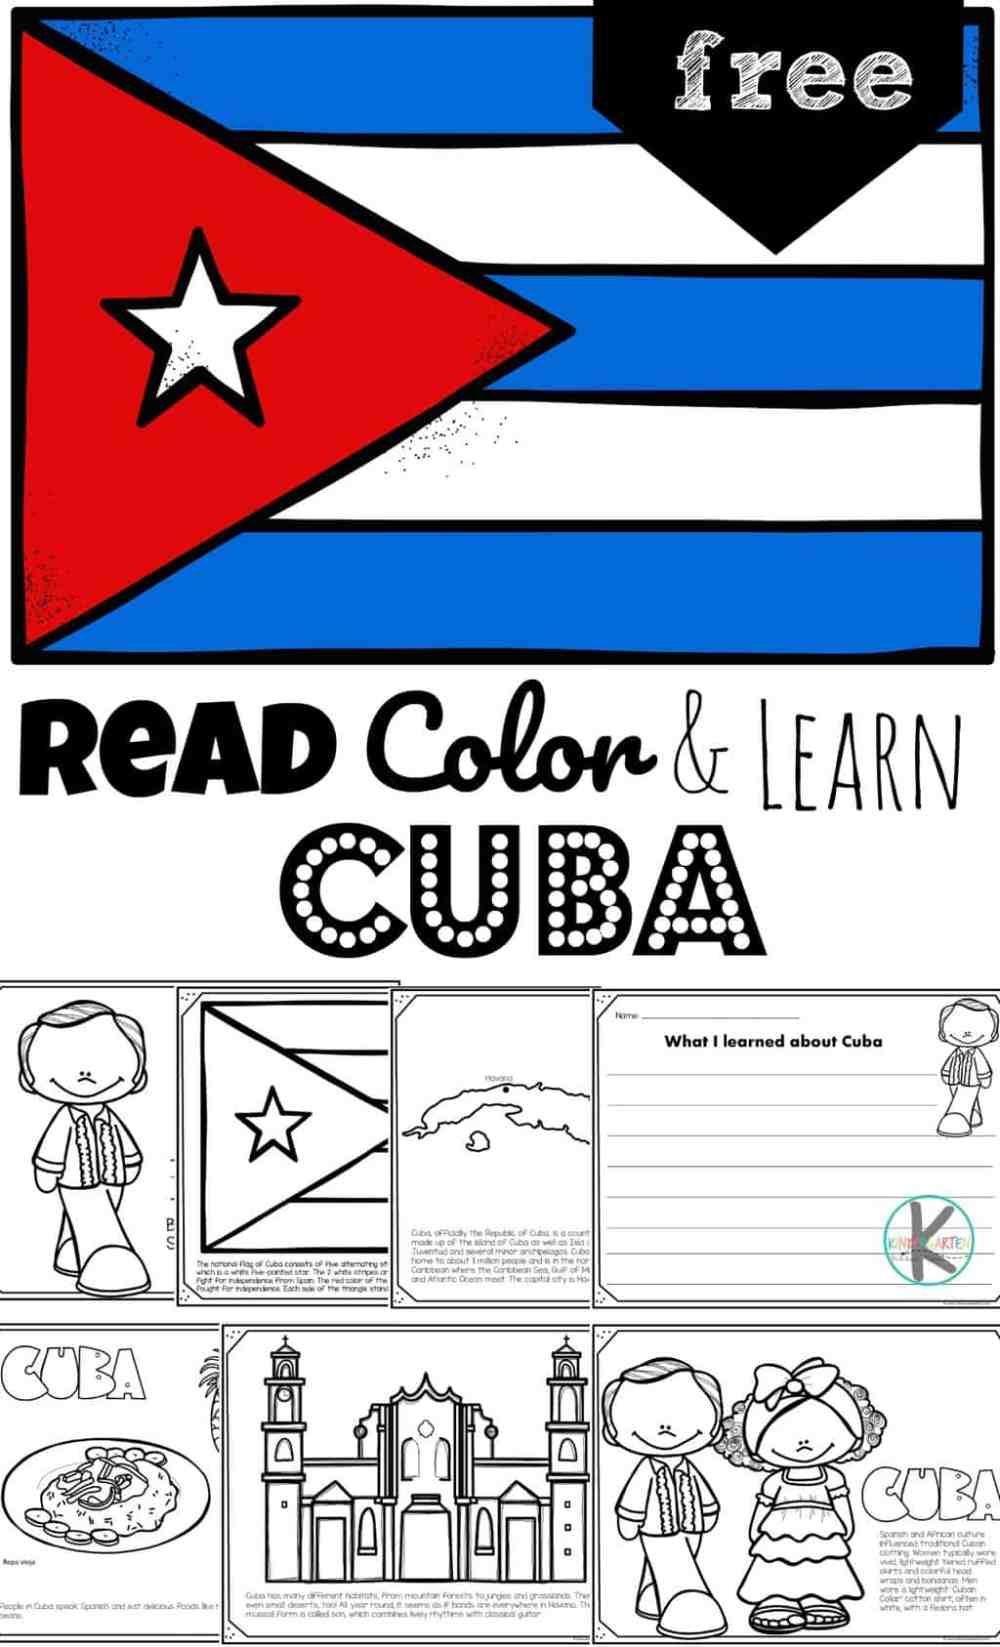 medium resolution of FREE Read Color and Learn about CUBA